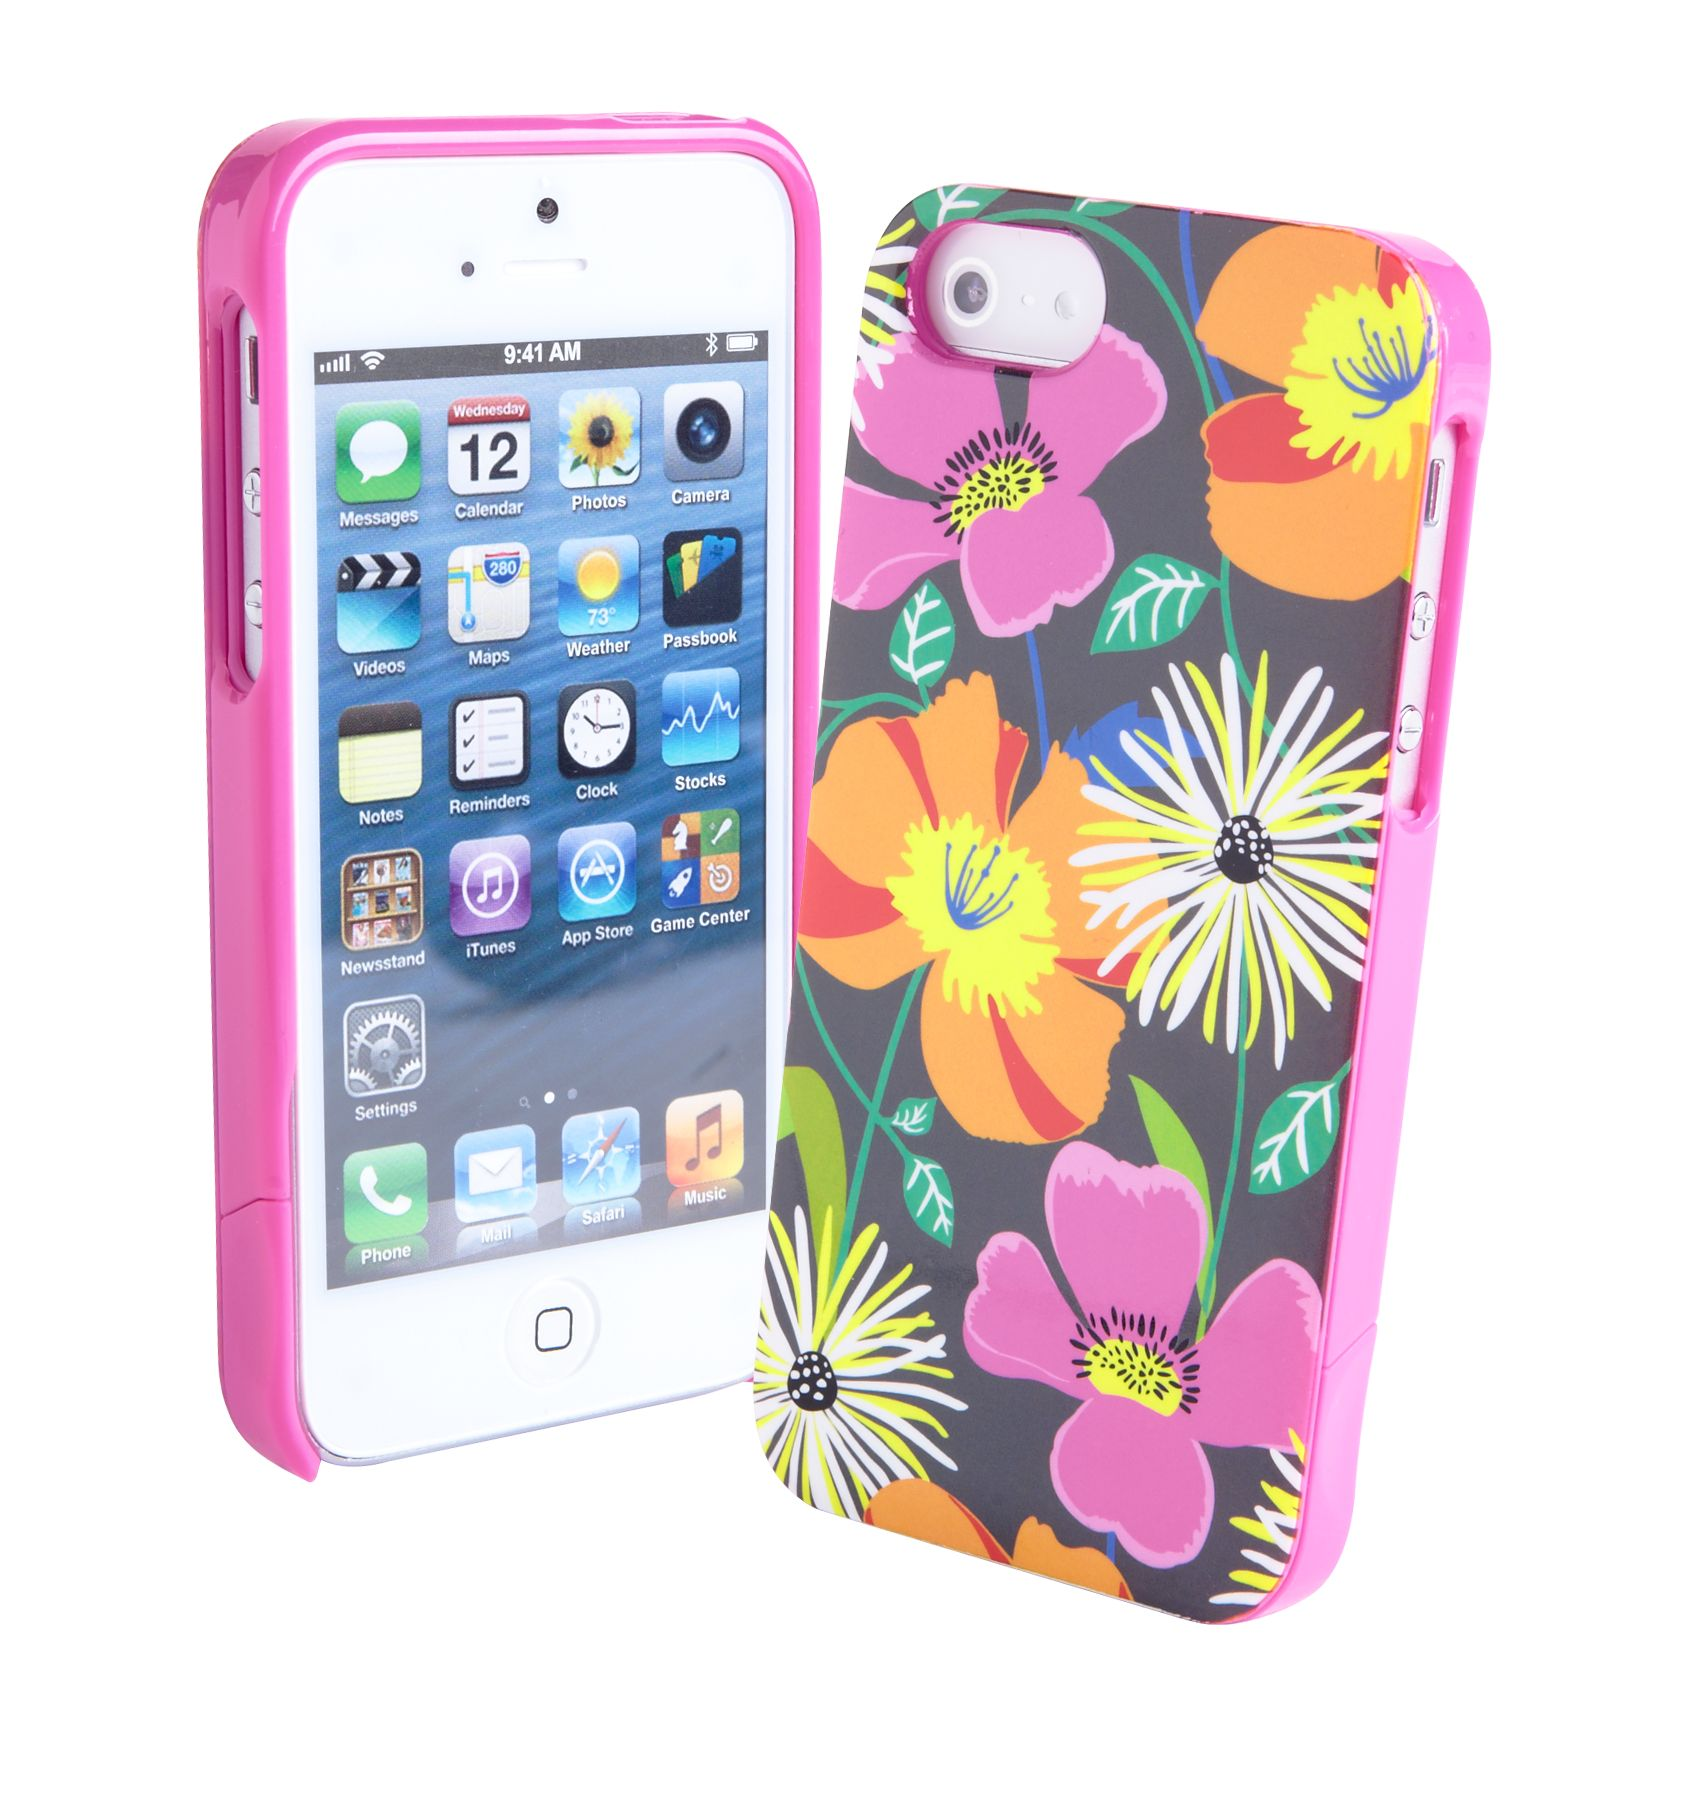 vera bradley iphone 5 case vera bradley slide frame phone for iphone 5 ebay 18147